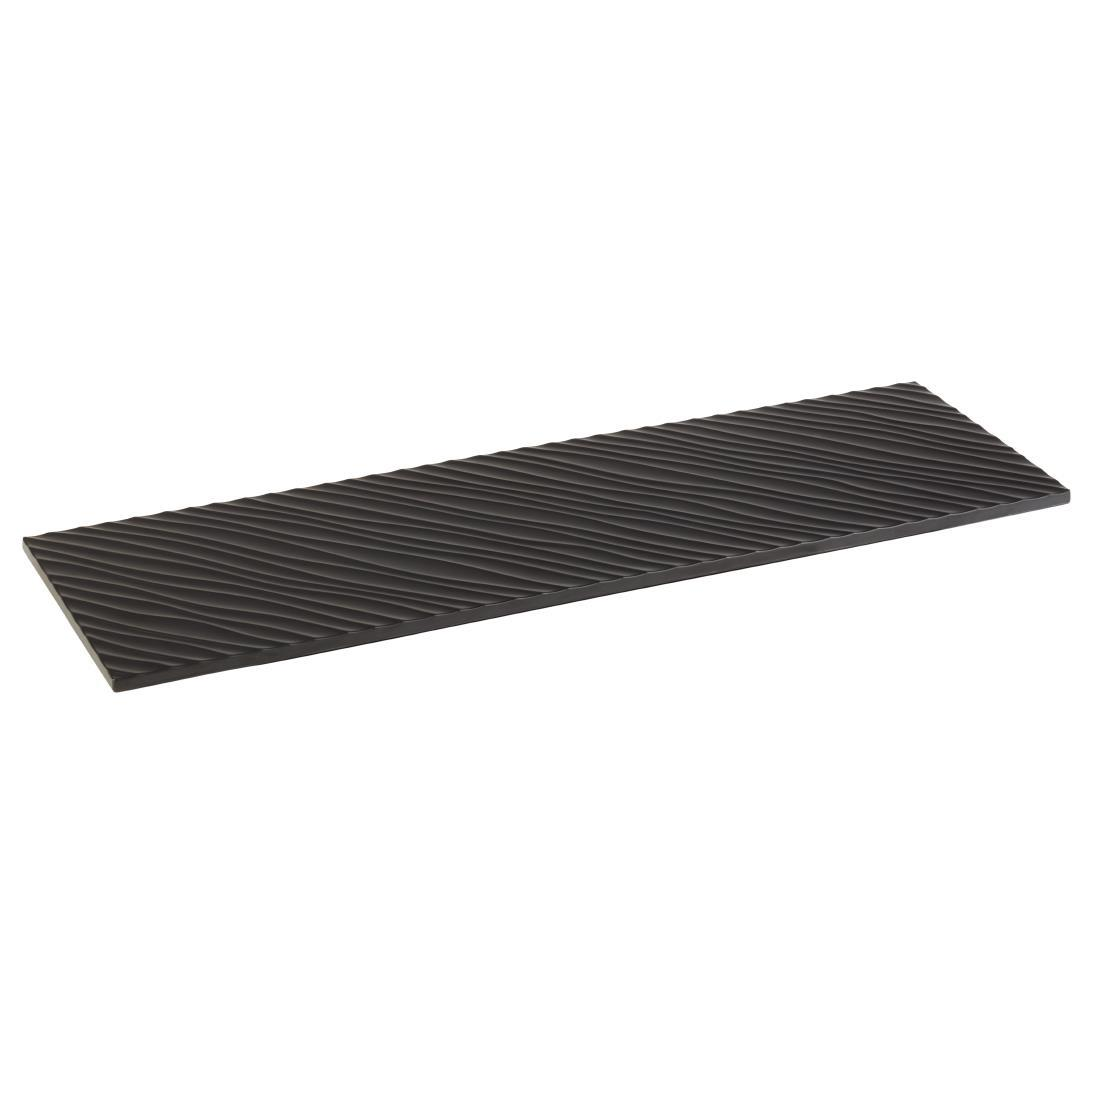 DT755 - APS+ Tiles Tray Black GN1/2 - Each - DT755